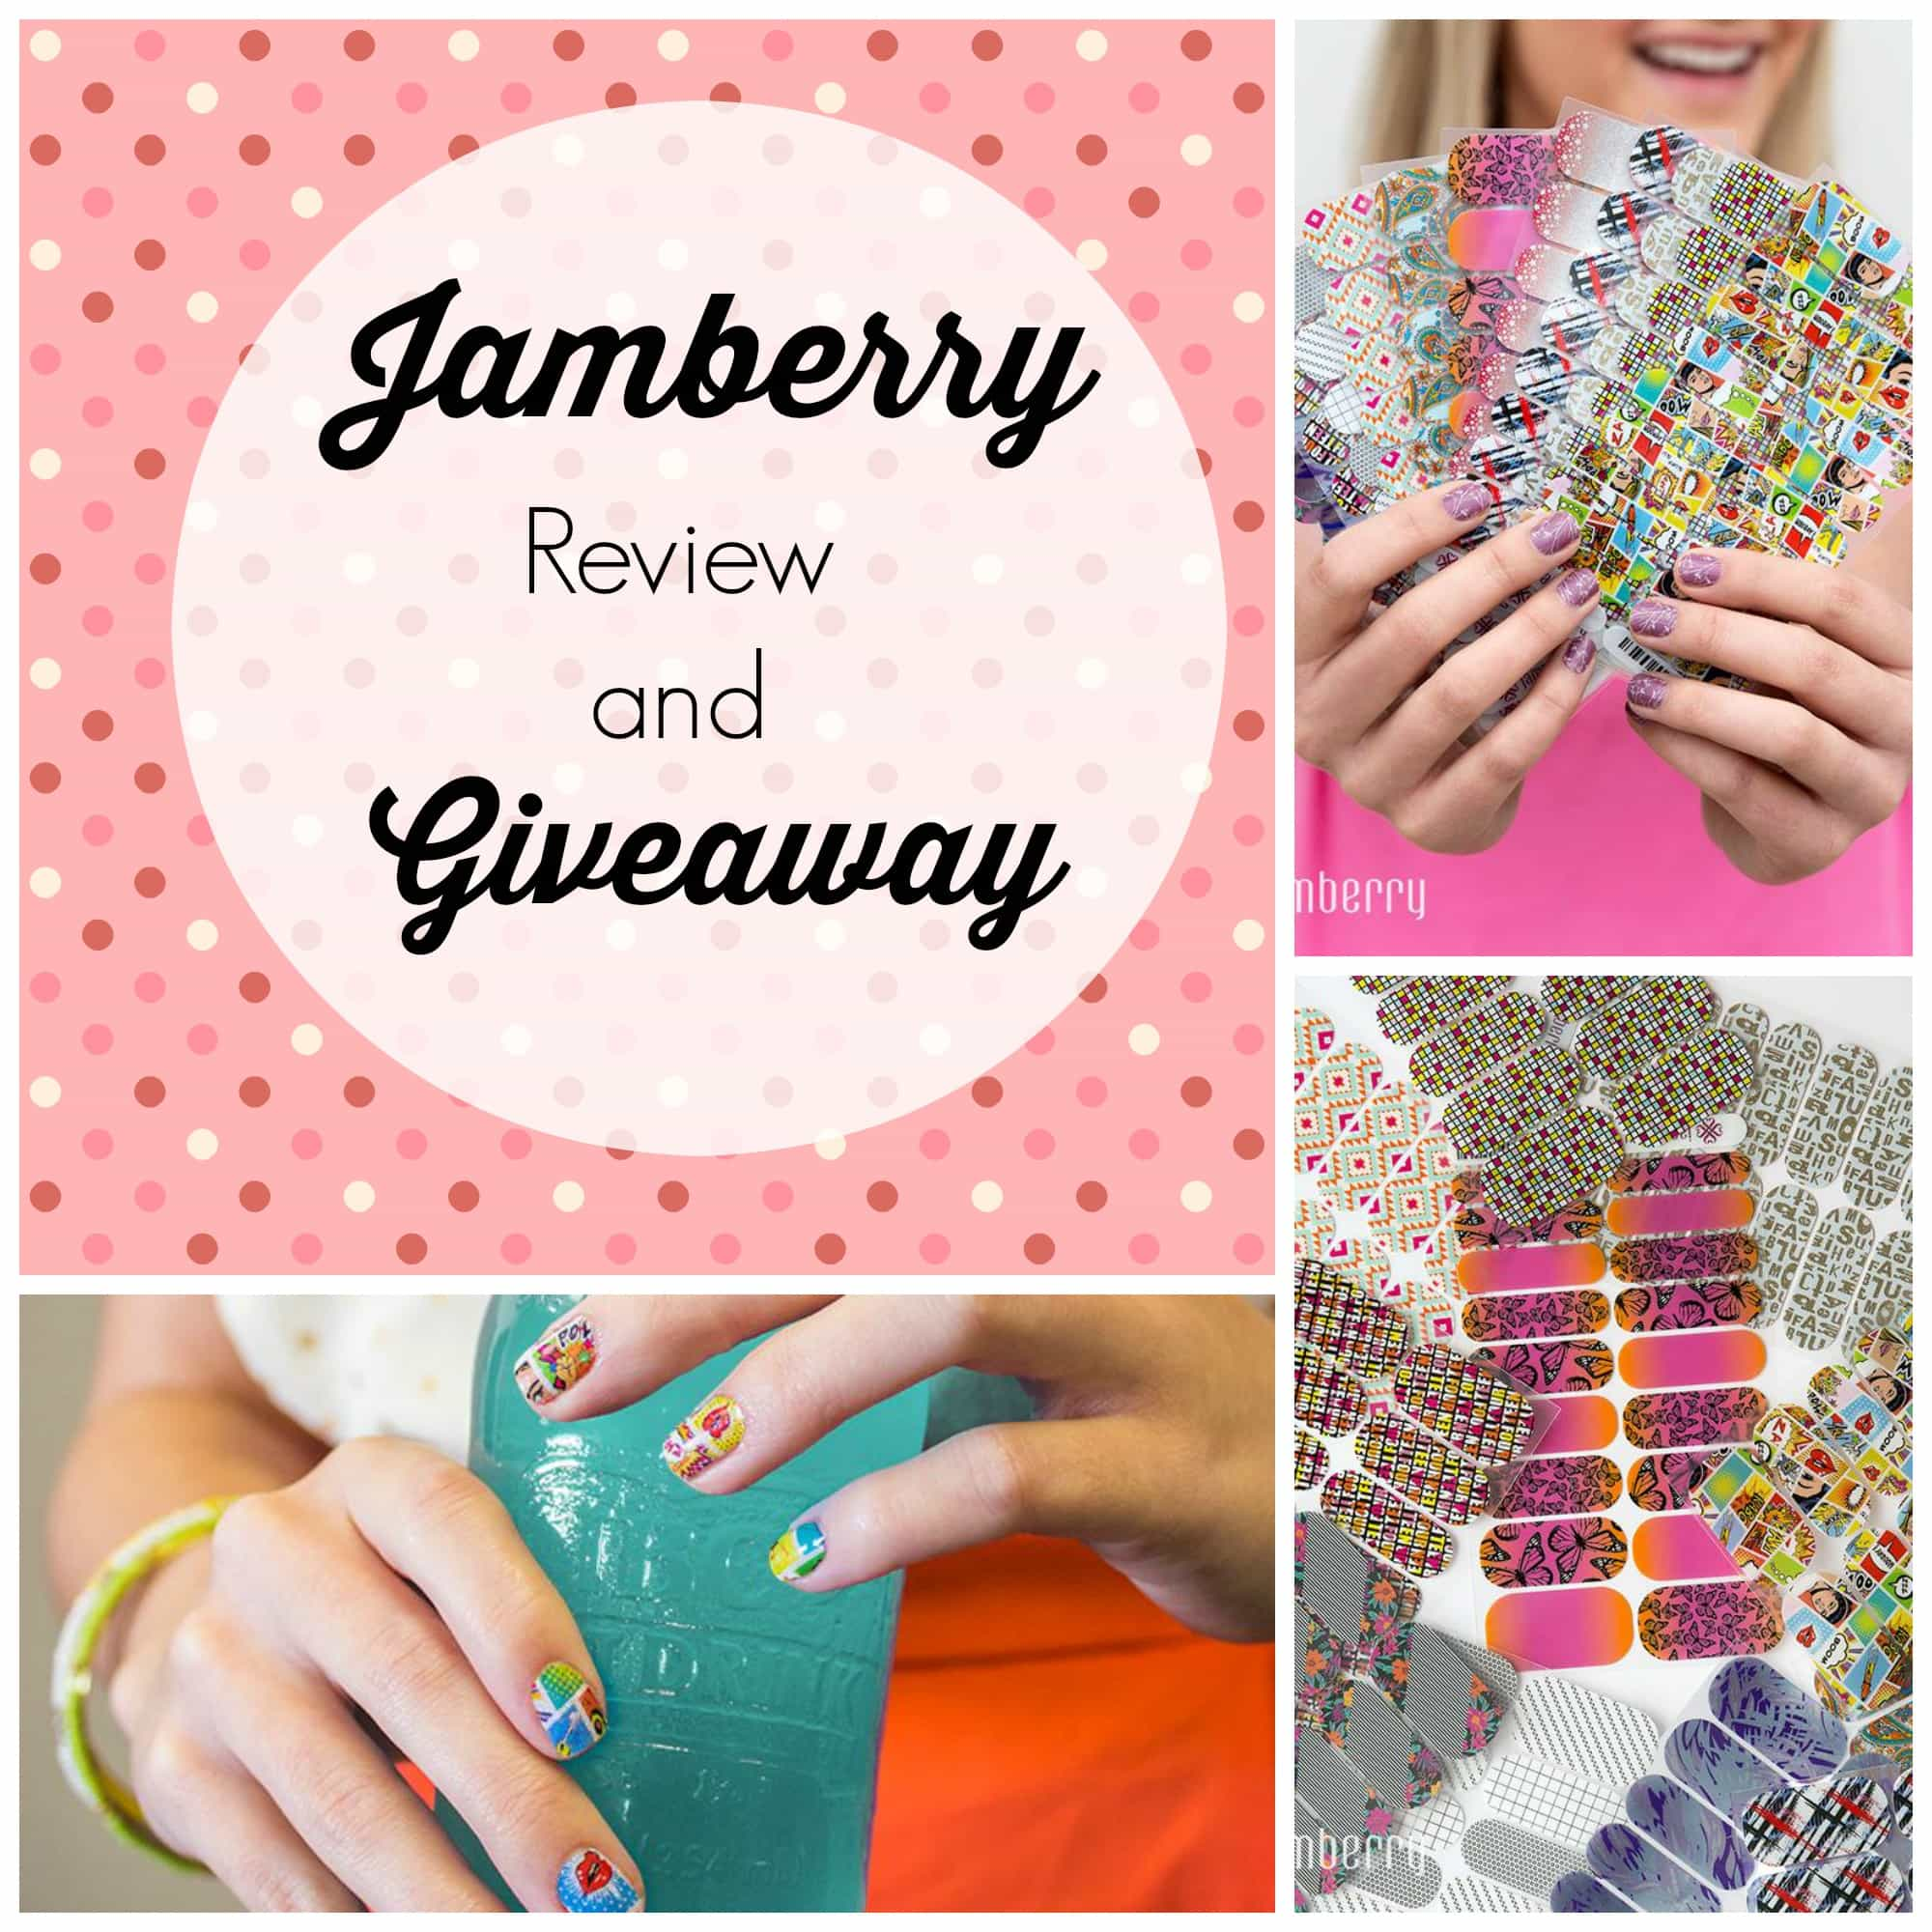 Jamberry Review and Giveaway! - Happy Healthy Mama